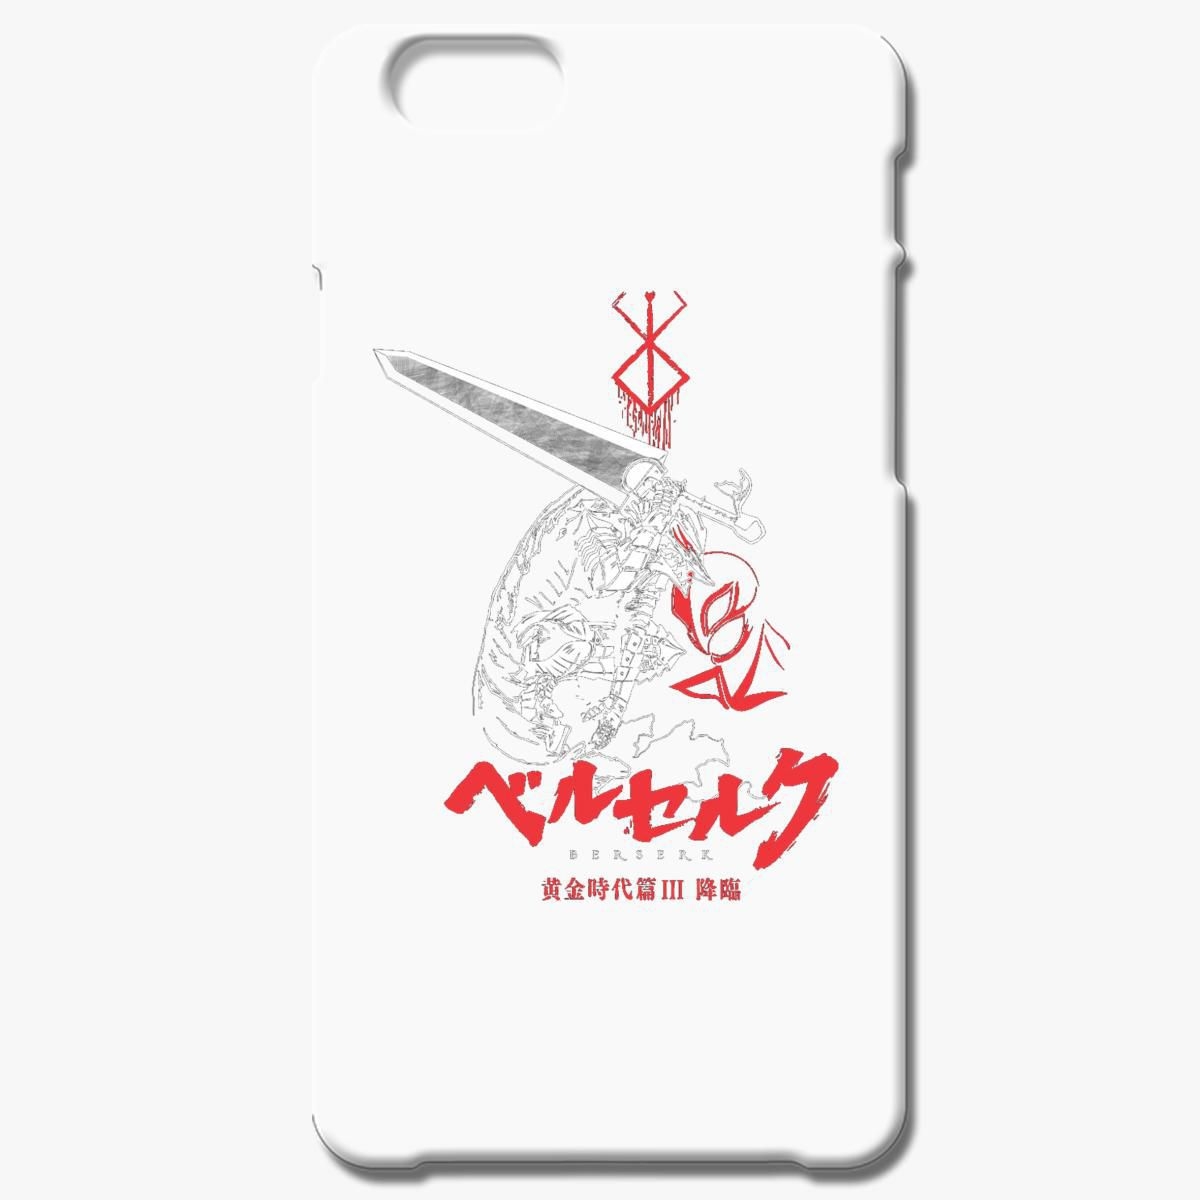 Berserk Iphone 6 6s Plus Case